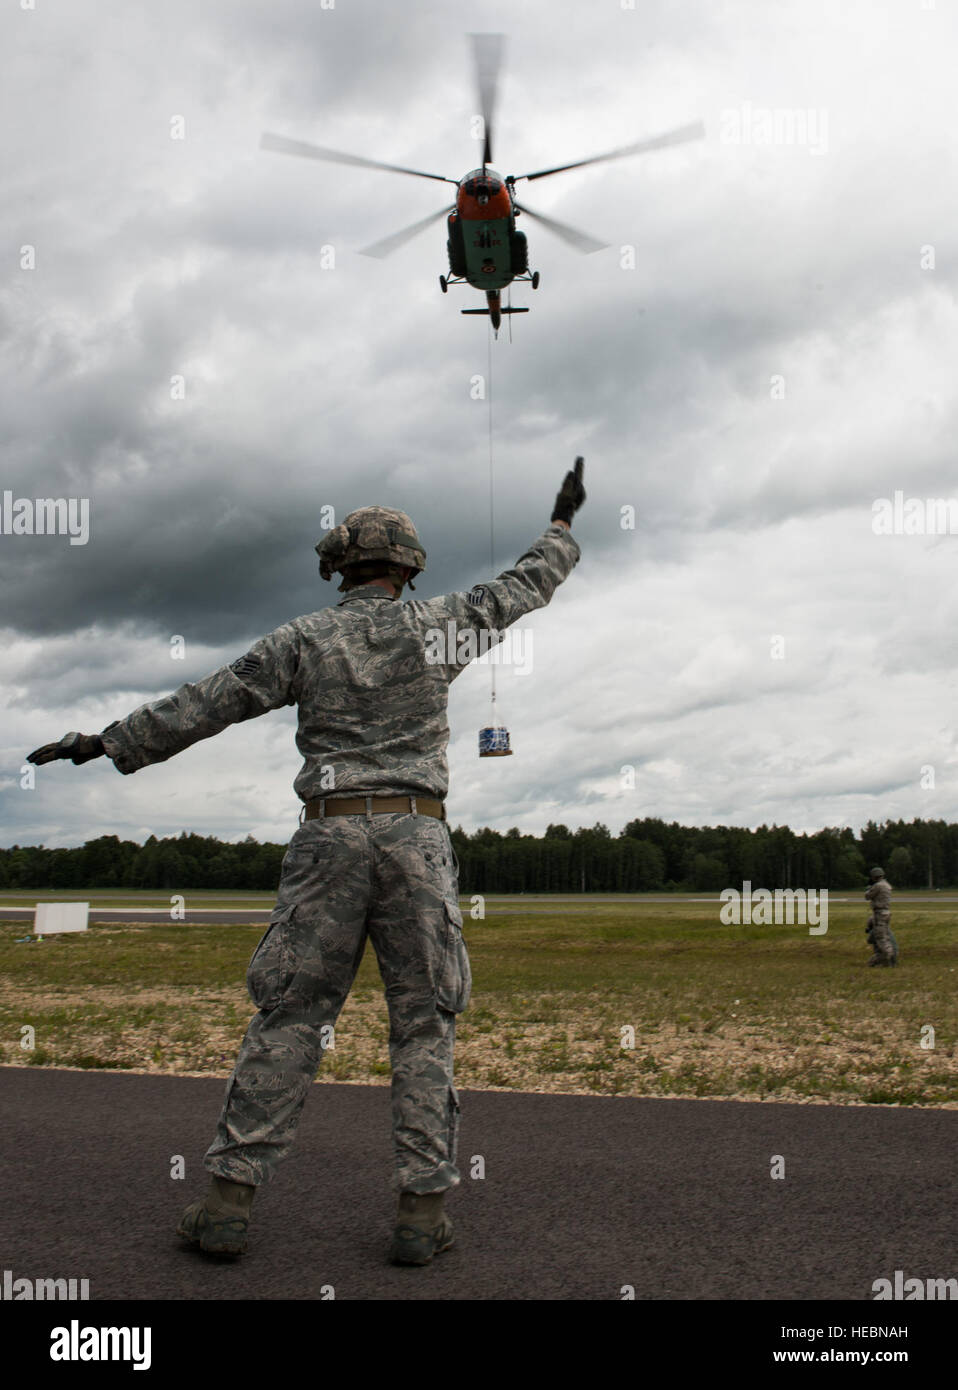 Staff Sgt. Timothy Kennedy marshals a Latvian Mi-8 helicopter in part of sling-load operations training during the - Stock Image